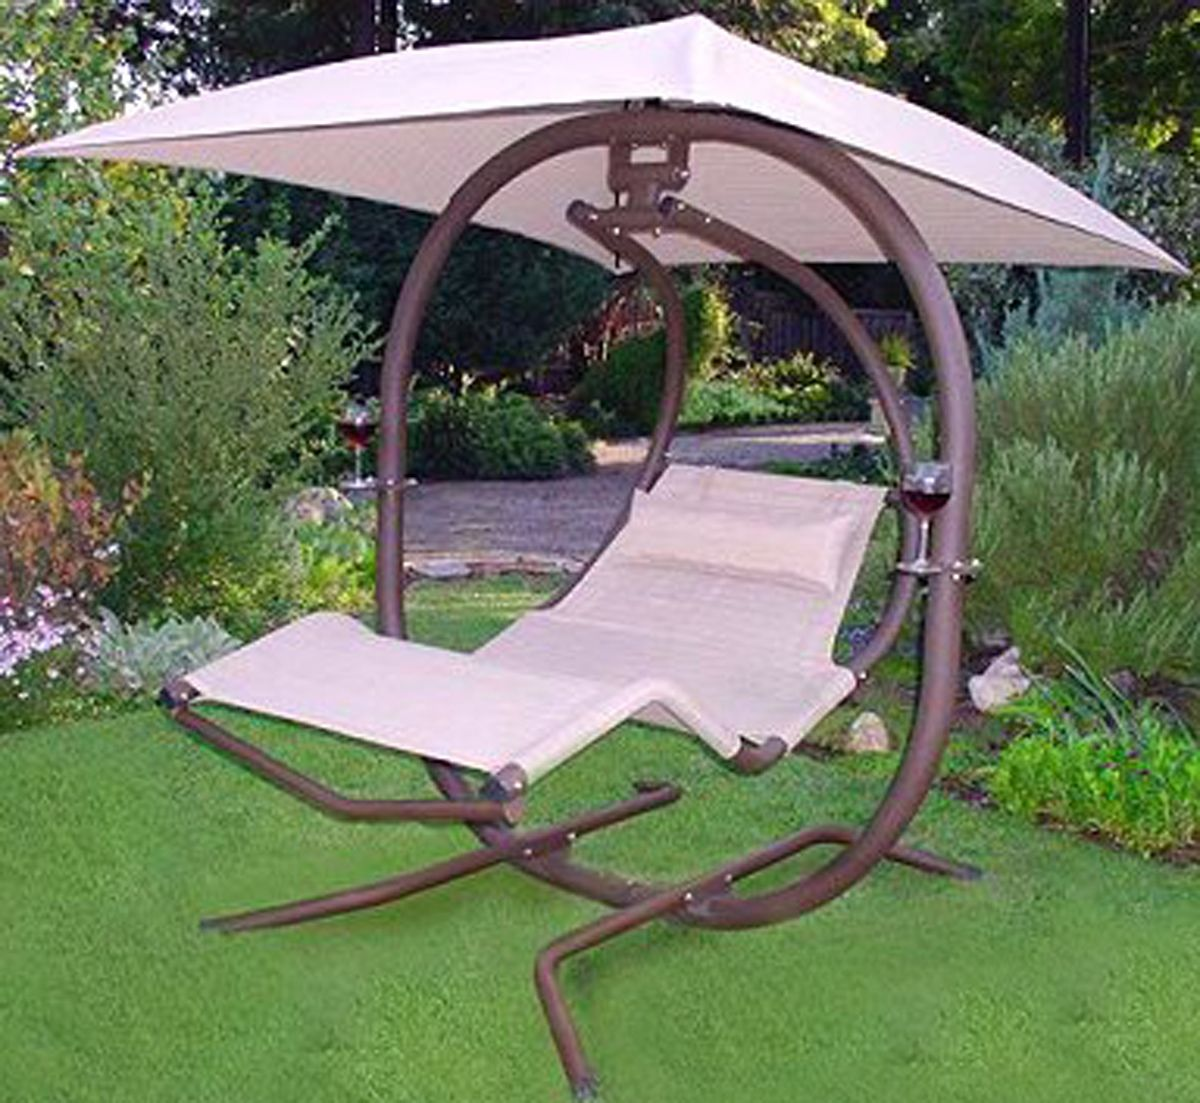 Zero Gravity Hammock Chair This Swing So Comfy Next Home Will Have